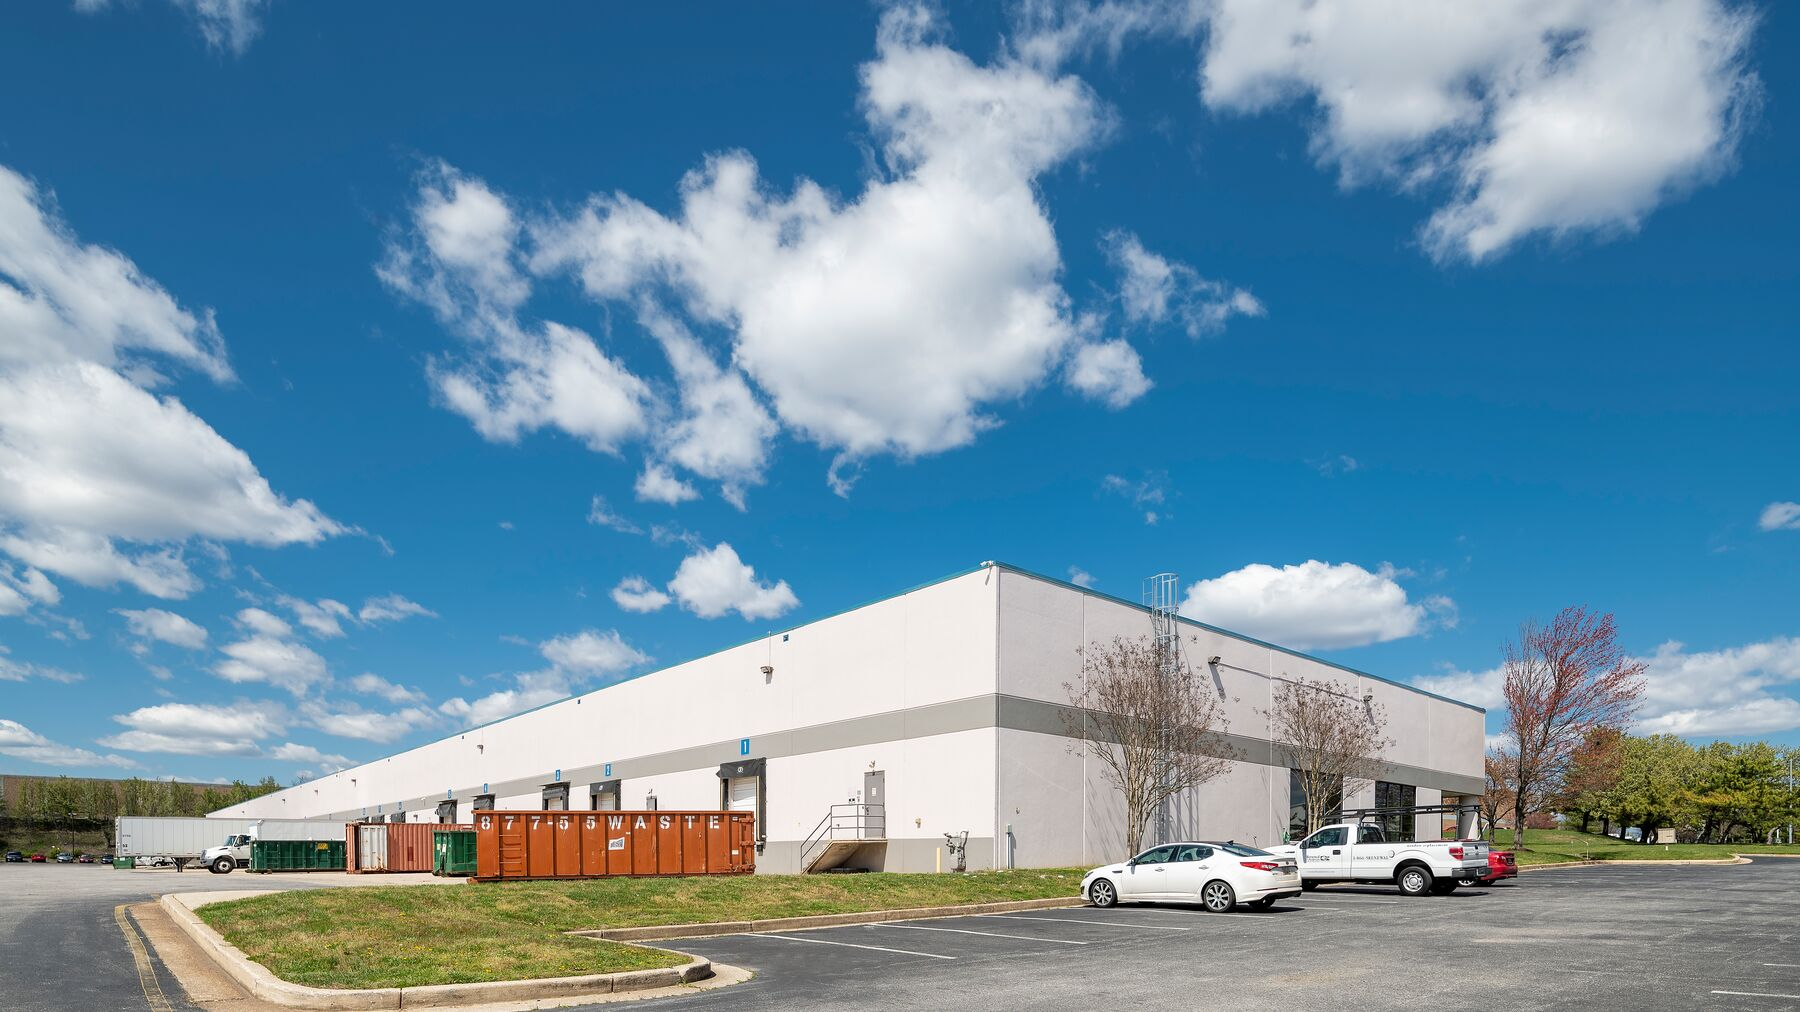 DPM-Prologis-Baltimore-Washington-Industrial-Park-11_-1.jpg